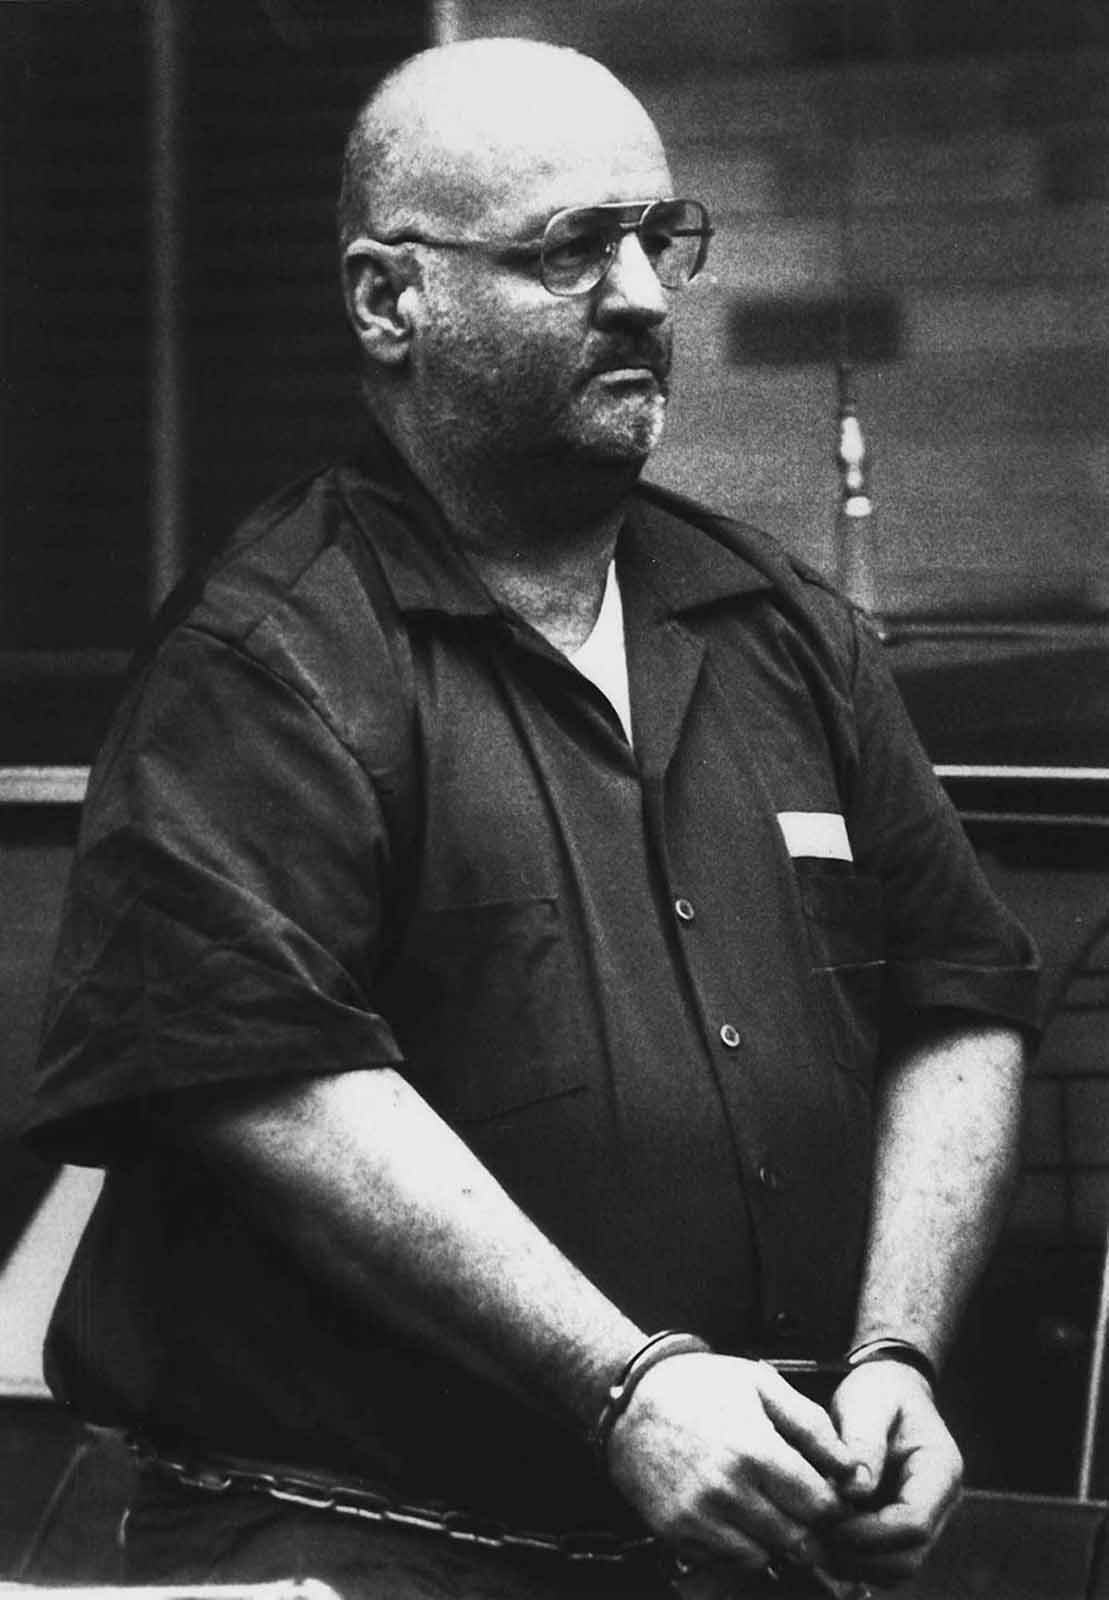 Arthur Shawcross seemed like your run of the mill serial killer, but after he was sentenced to jail, the truth of his crimes came to light.